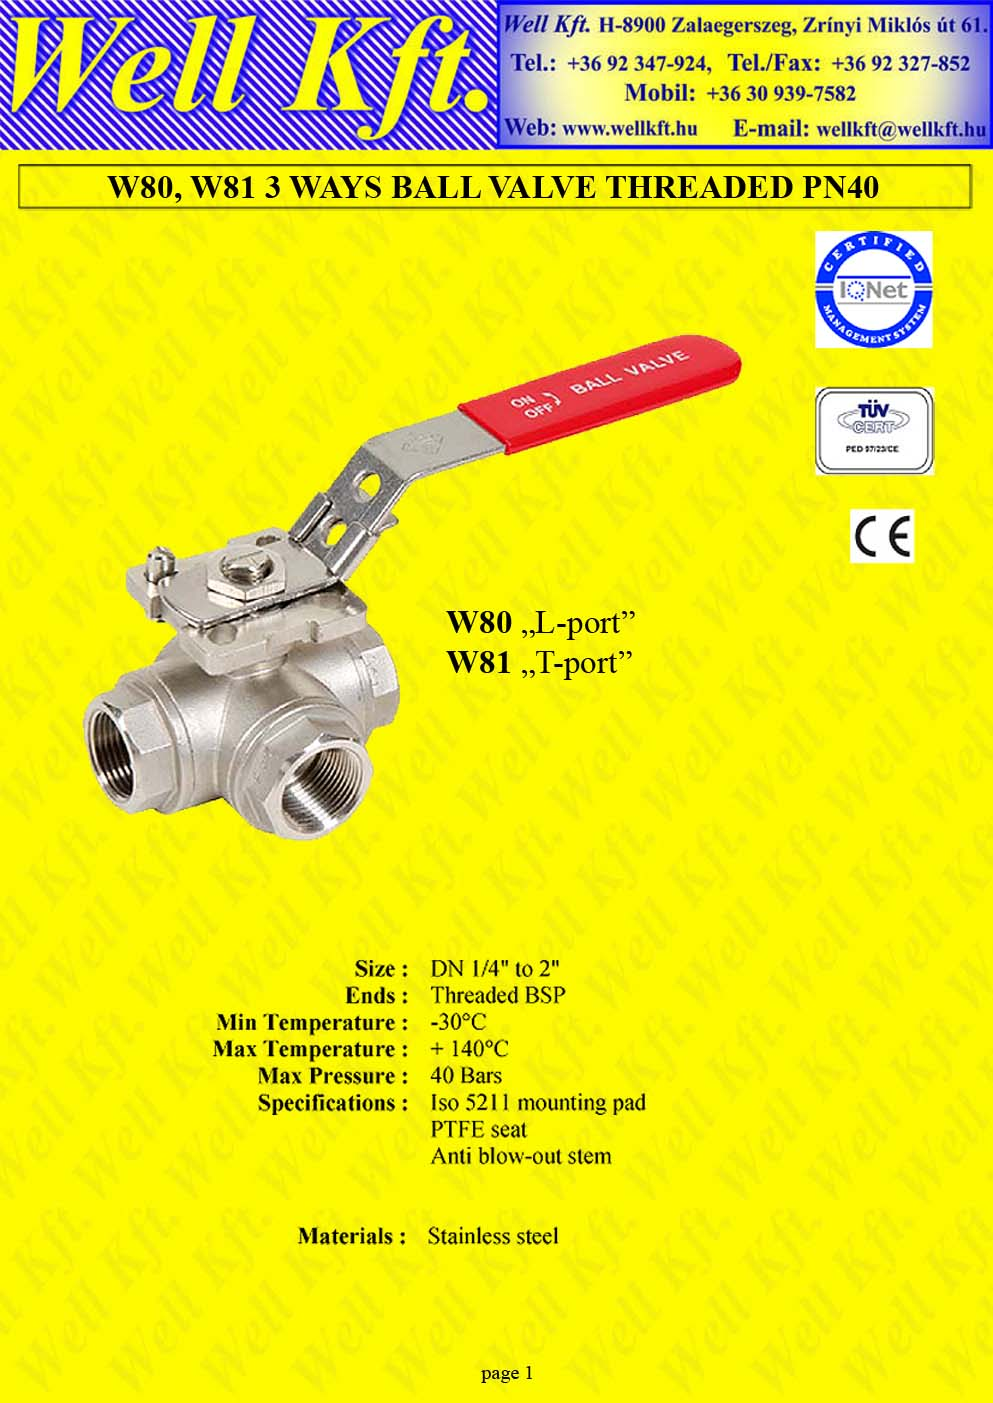 3 ways ball valve stainless steel threaded PN 40 (1.)